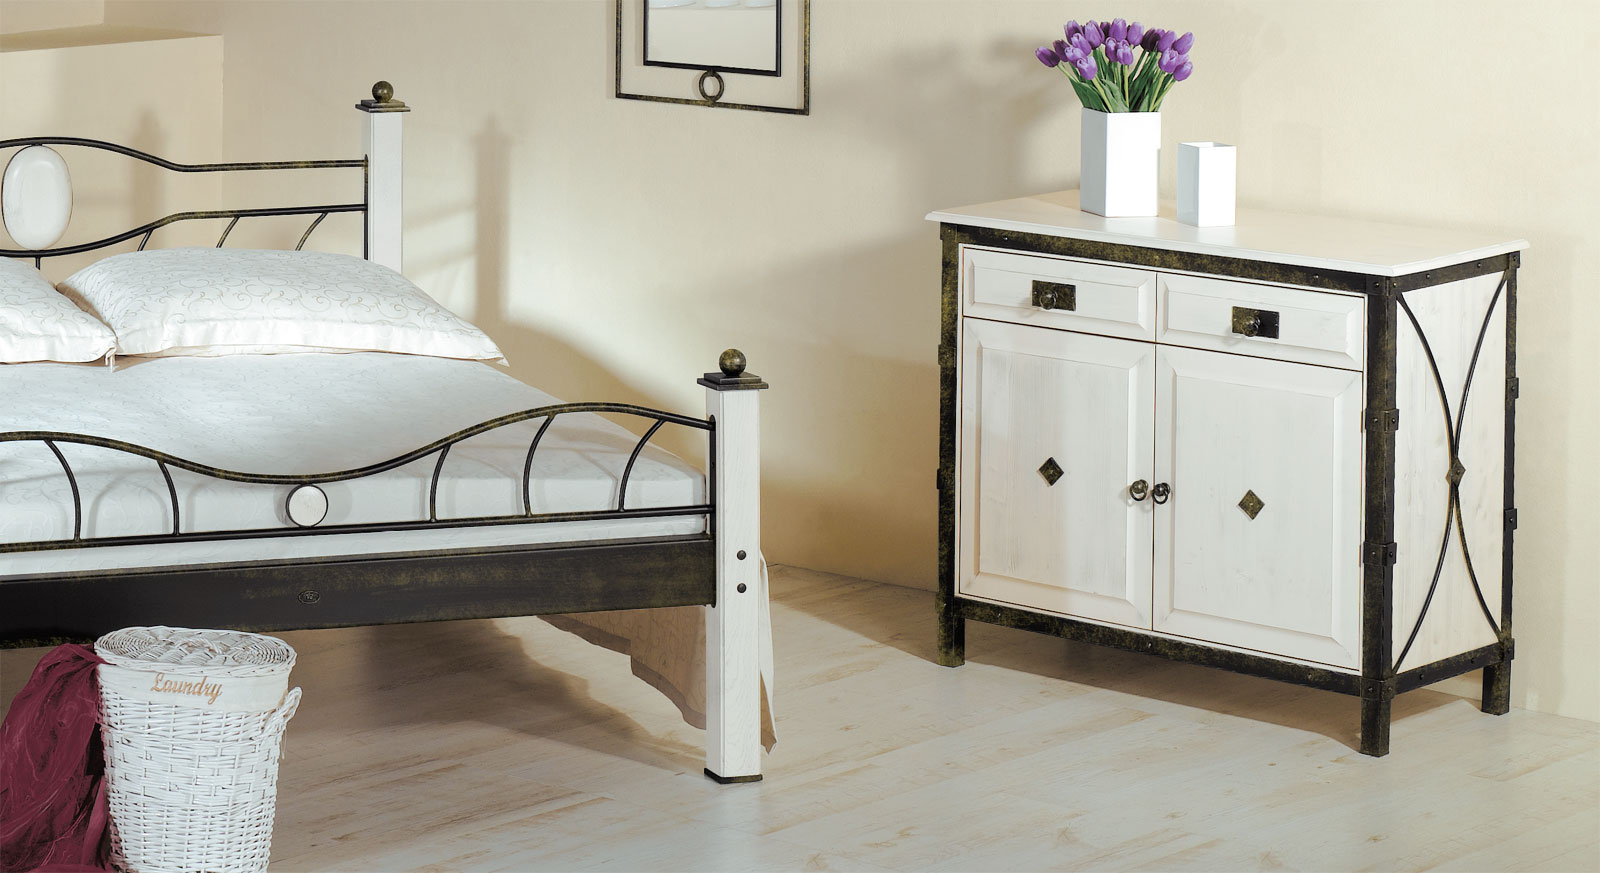 kommode aus schmiedeeisen und massivholz lavia. Black Bedroom Furniture Sets. Home Design Ideas